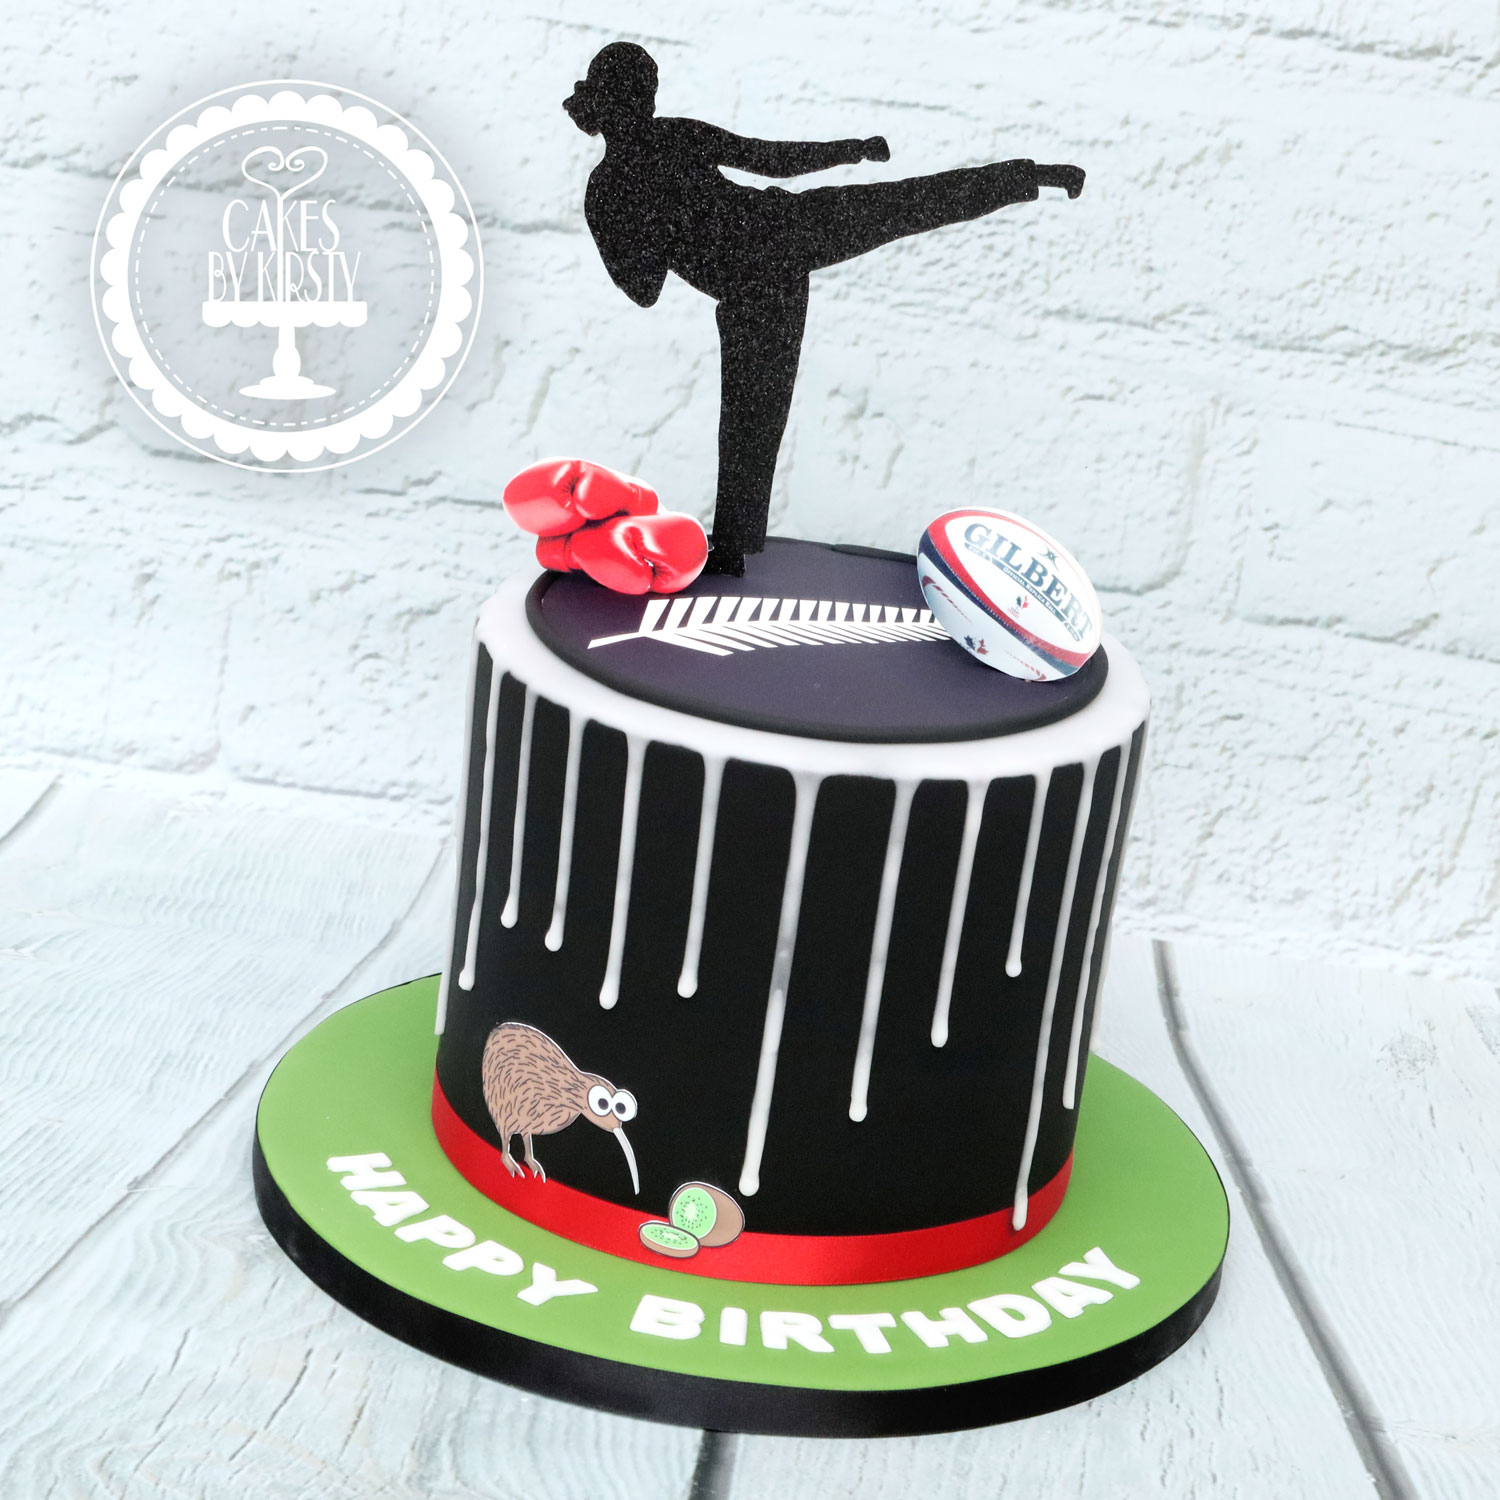 20210123 - Rugby Kickboxing Cake